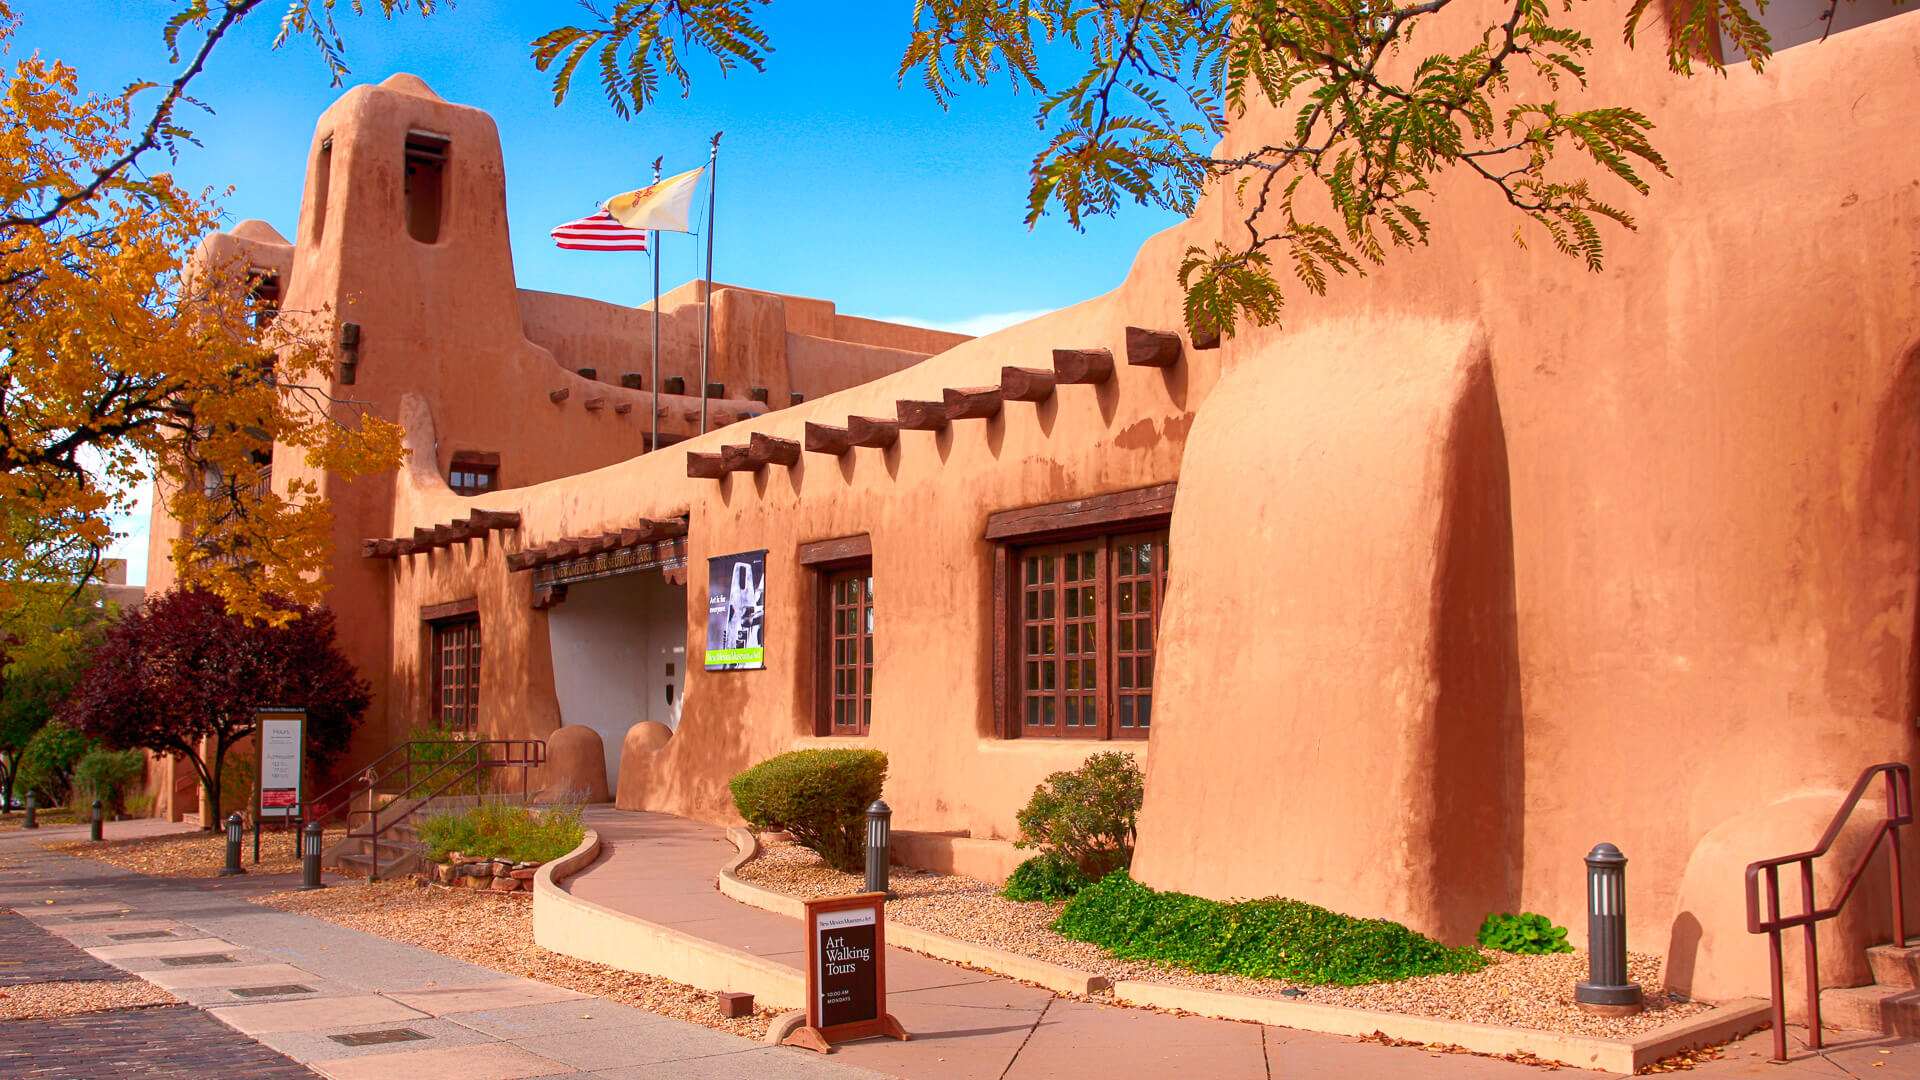 Outside the New Mexico Museum of Art on W Palace Street in downtown Santa Fe, New Mexico USA.